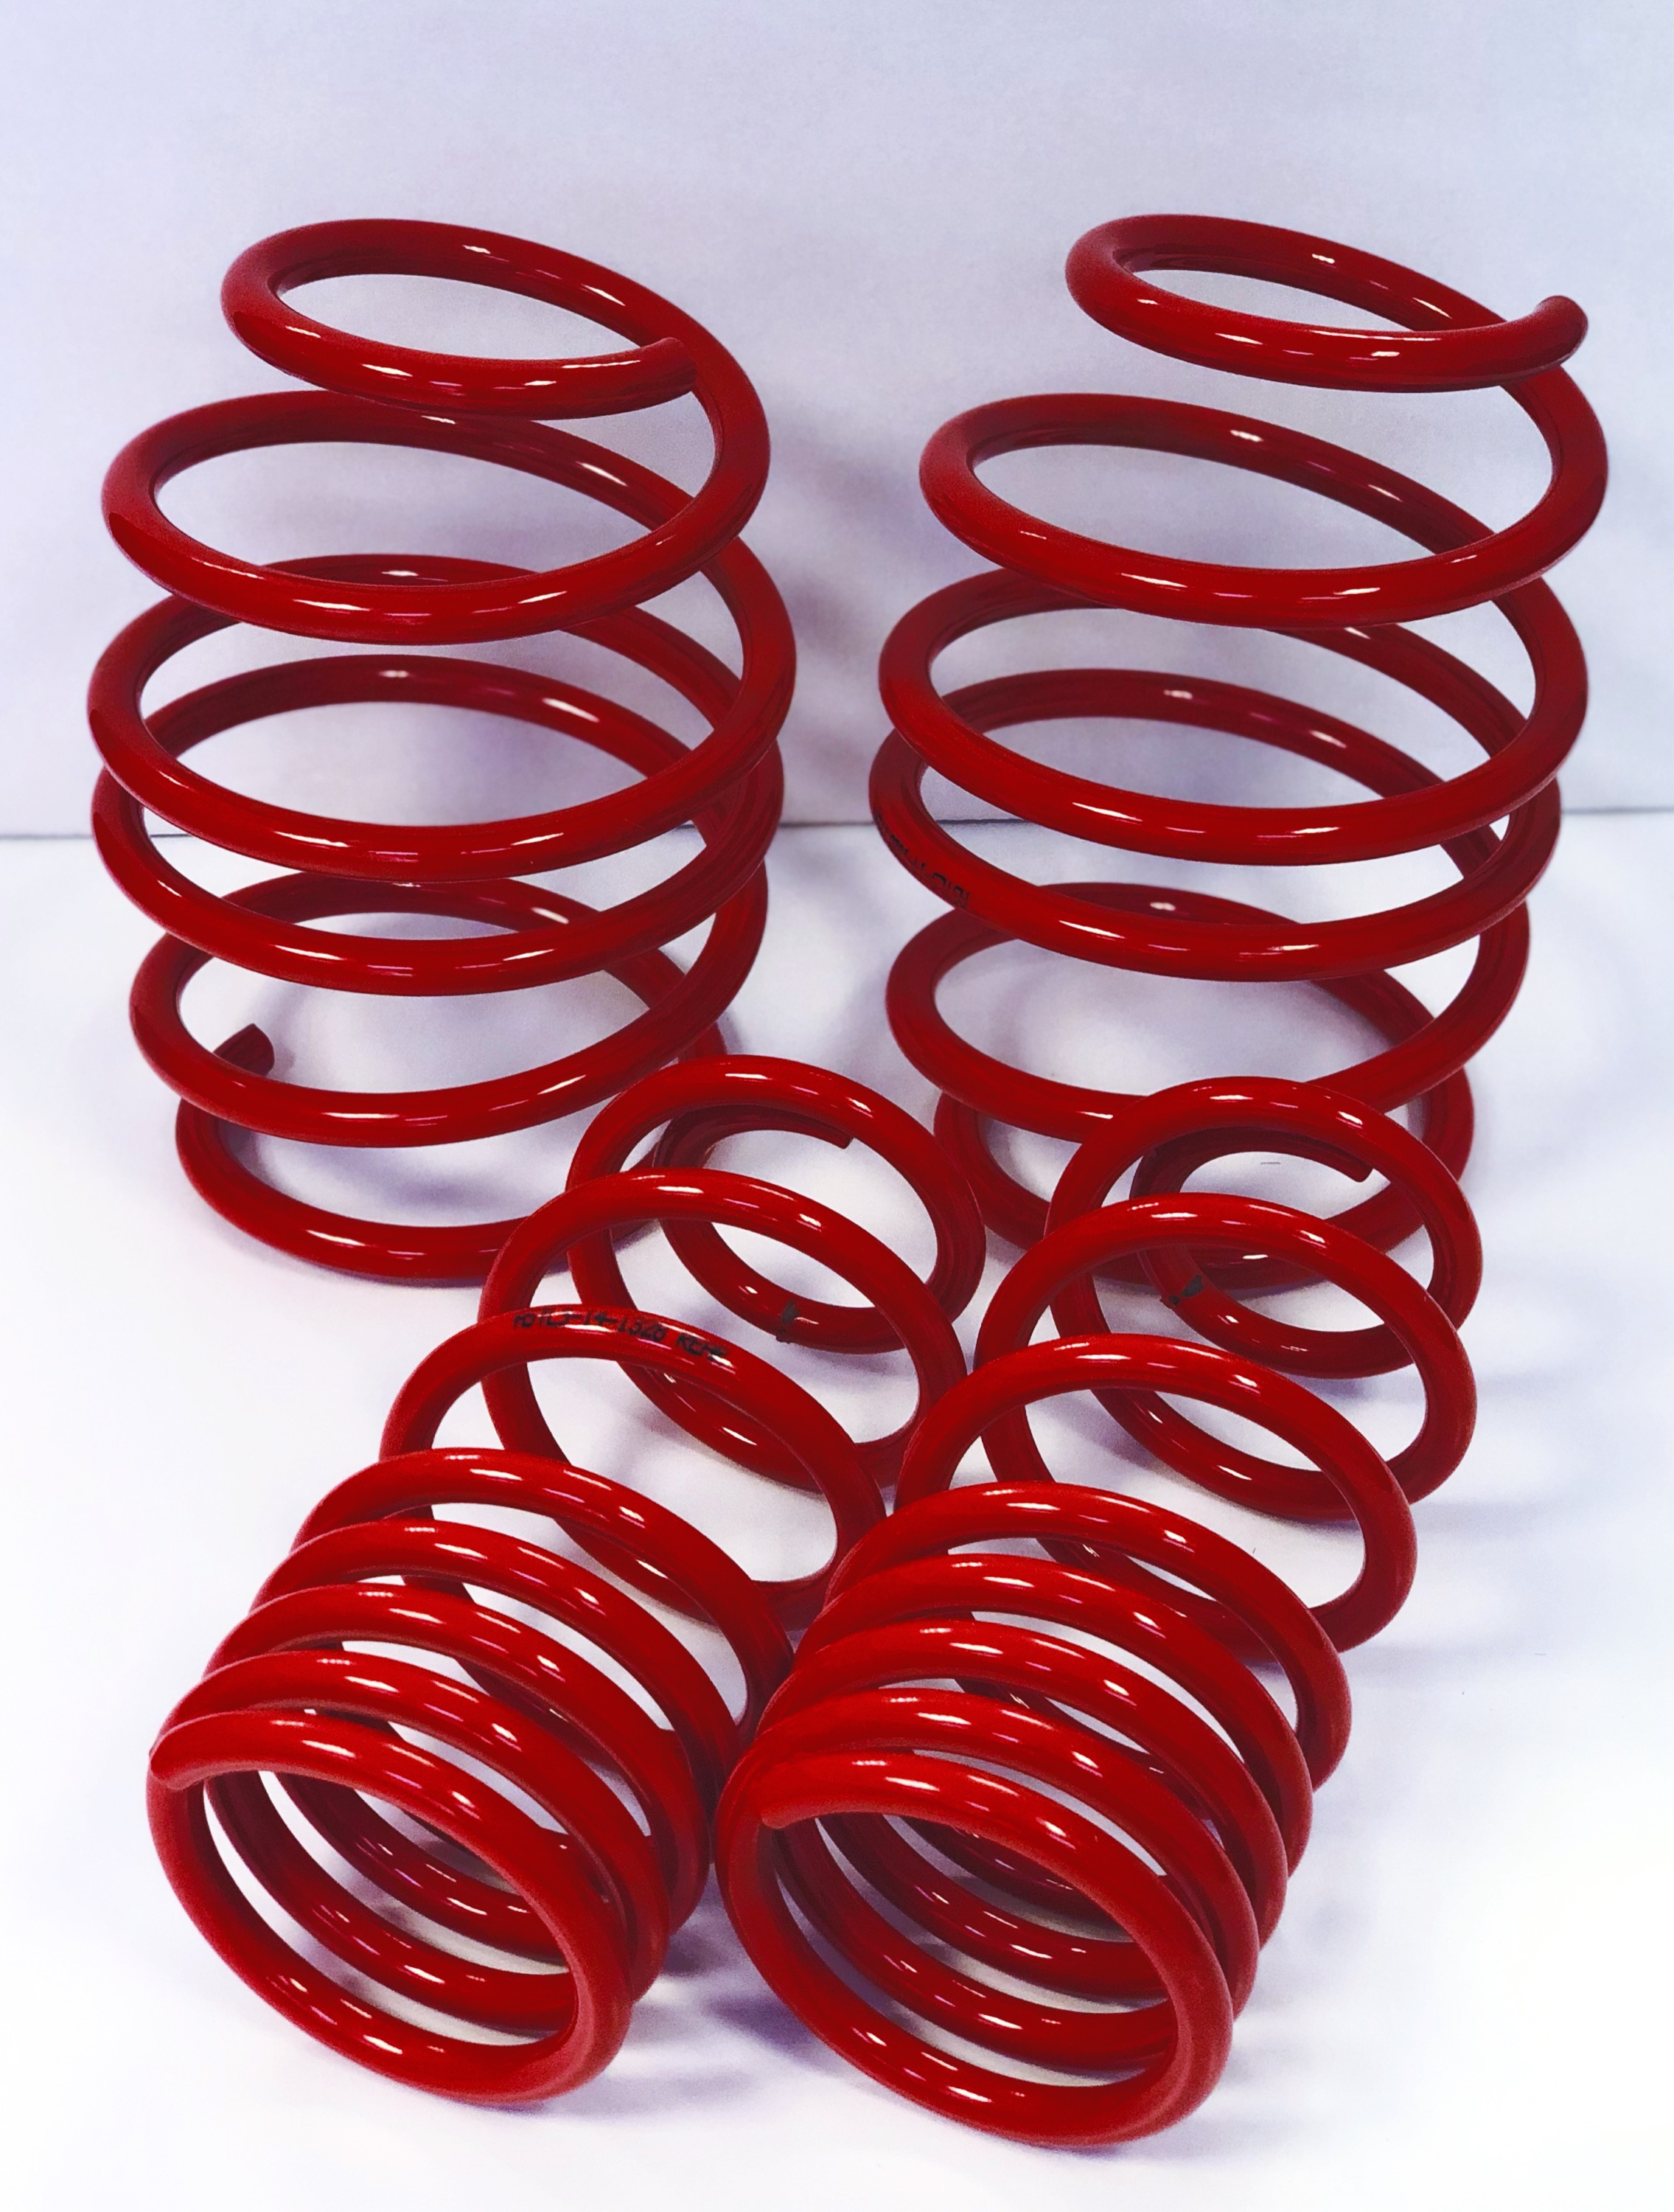 Seat IBIZA AST Suspension Lowering Springs 45MM